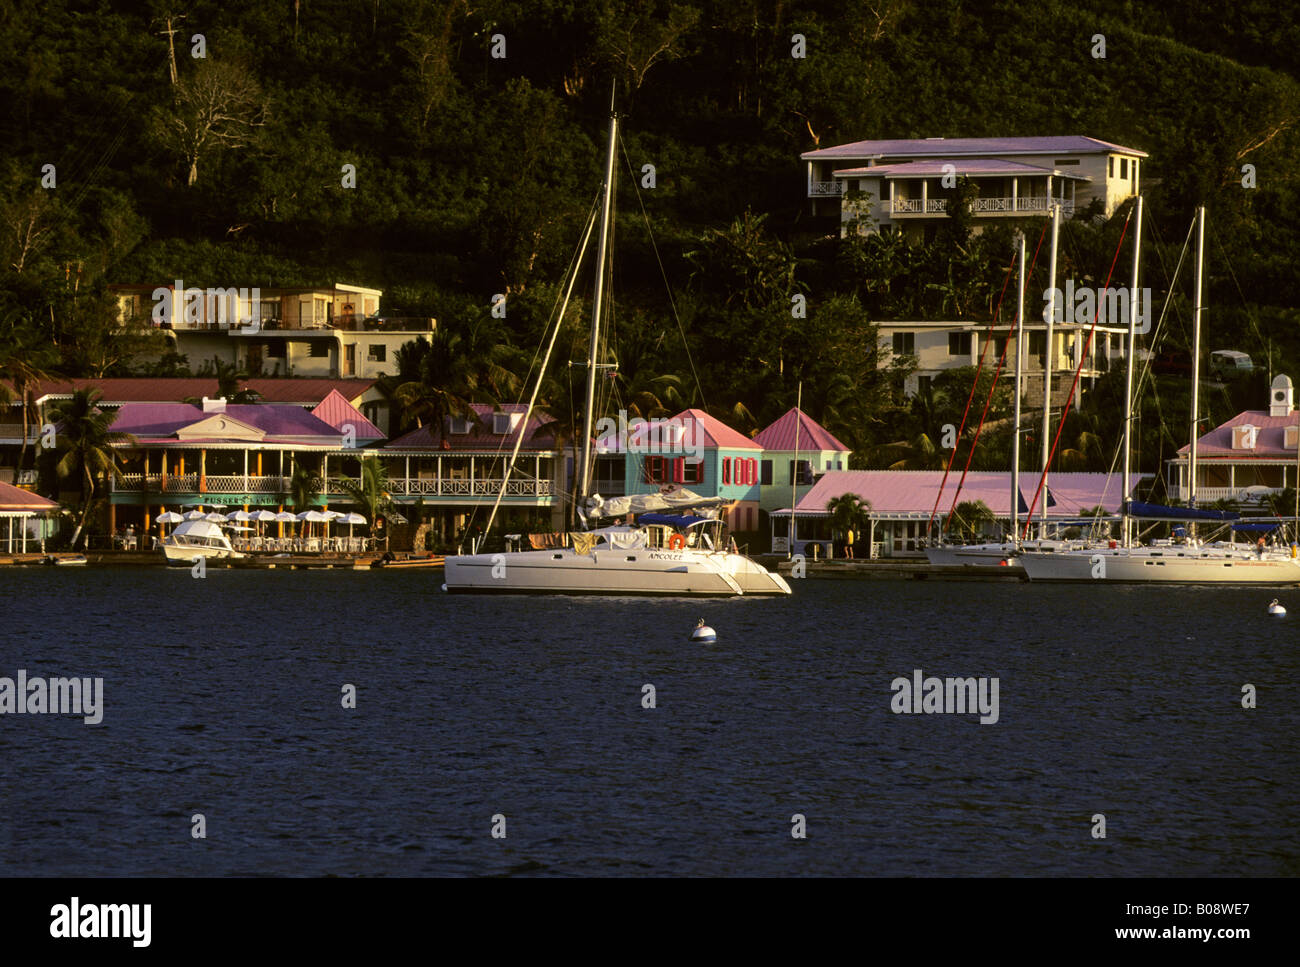 Yachts, Frenchman's Cay Island, British Virgin Islands, Lesser Antilles, Caribbean - Stock Image